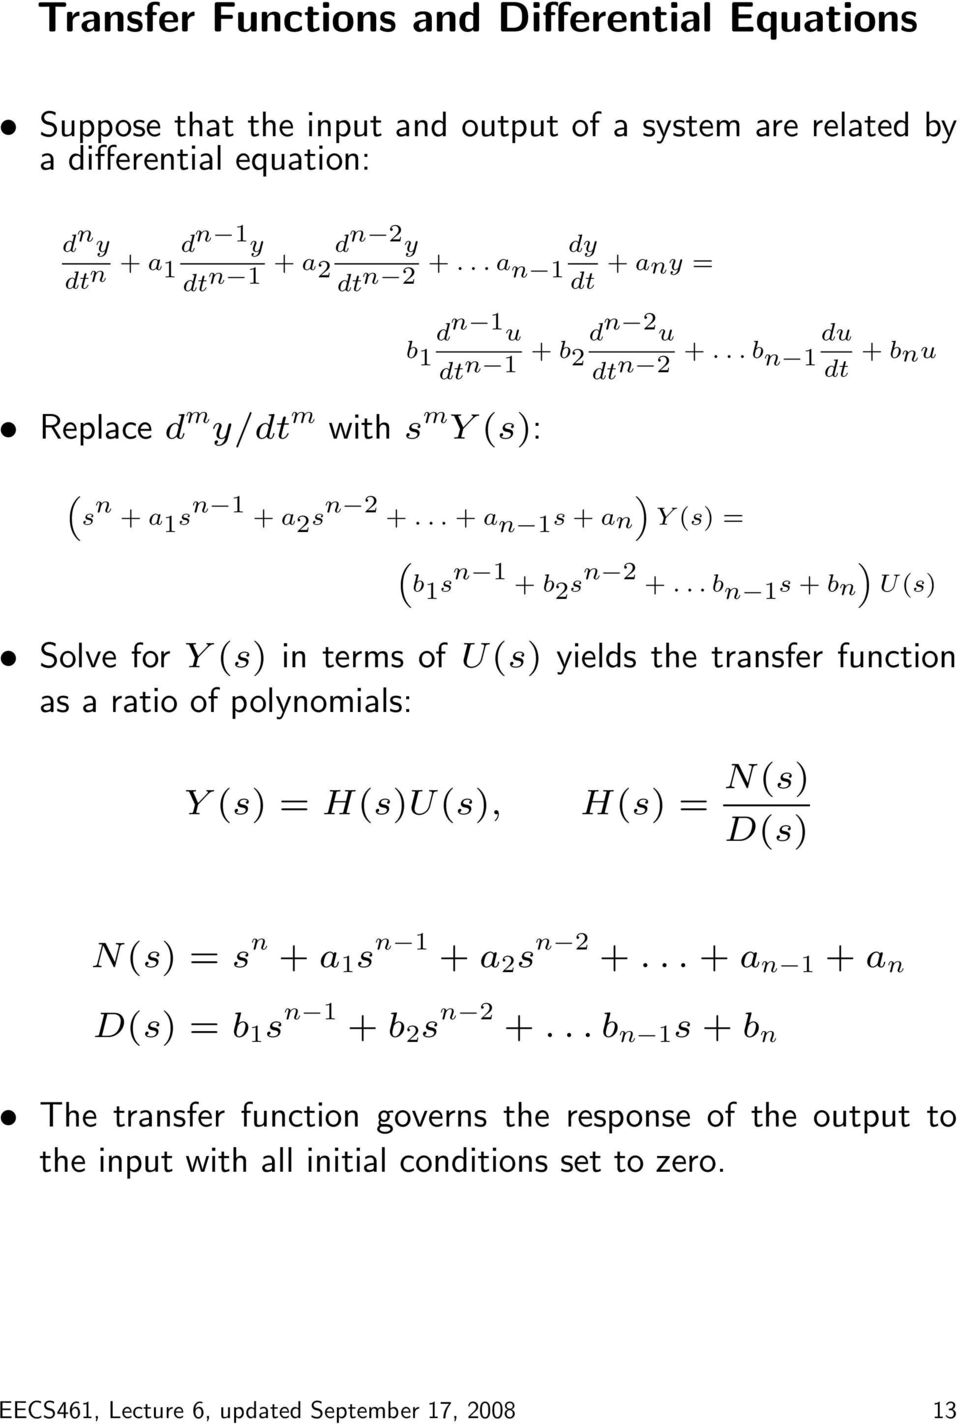 .. b n s + bn U(s) Solve for Y (s) in terms of U(s) yields the transfer function as a ratio of polynomials: Y (s) = H(s)U(s), H(s) = N(s) D(s) N(s) = s n + a s n + a 2 s n 2 +.